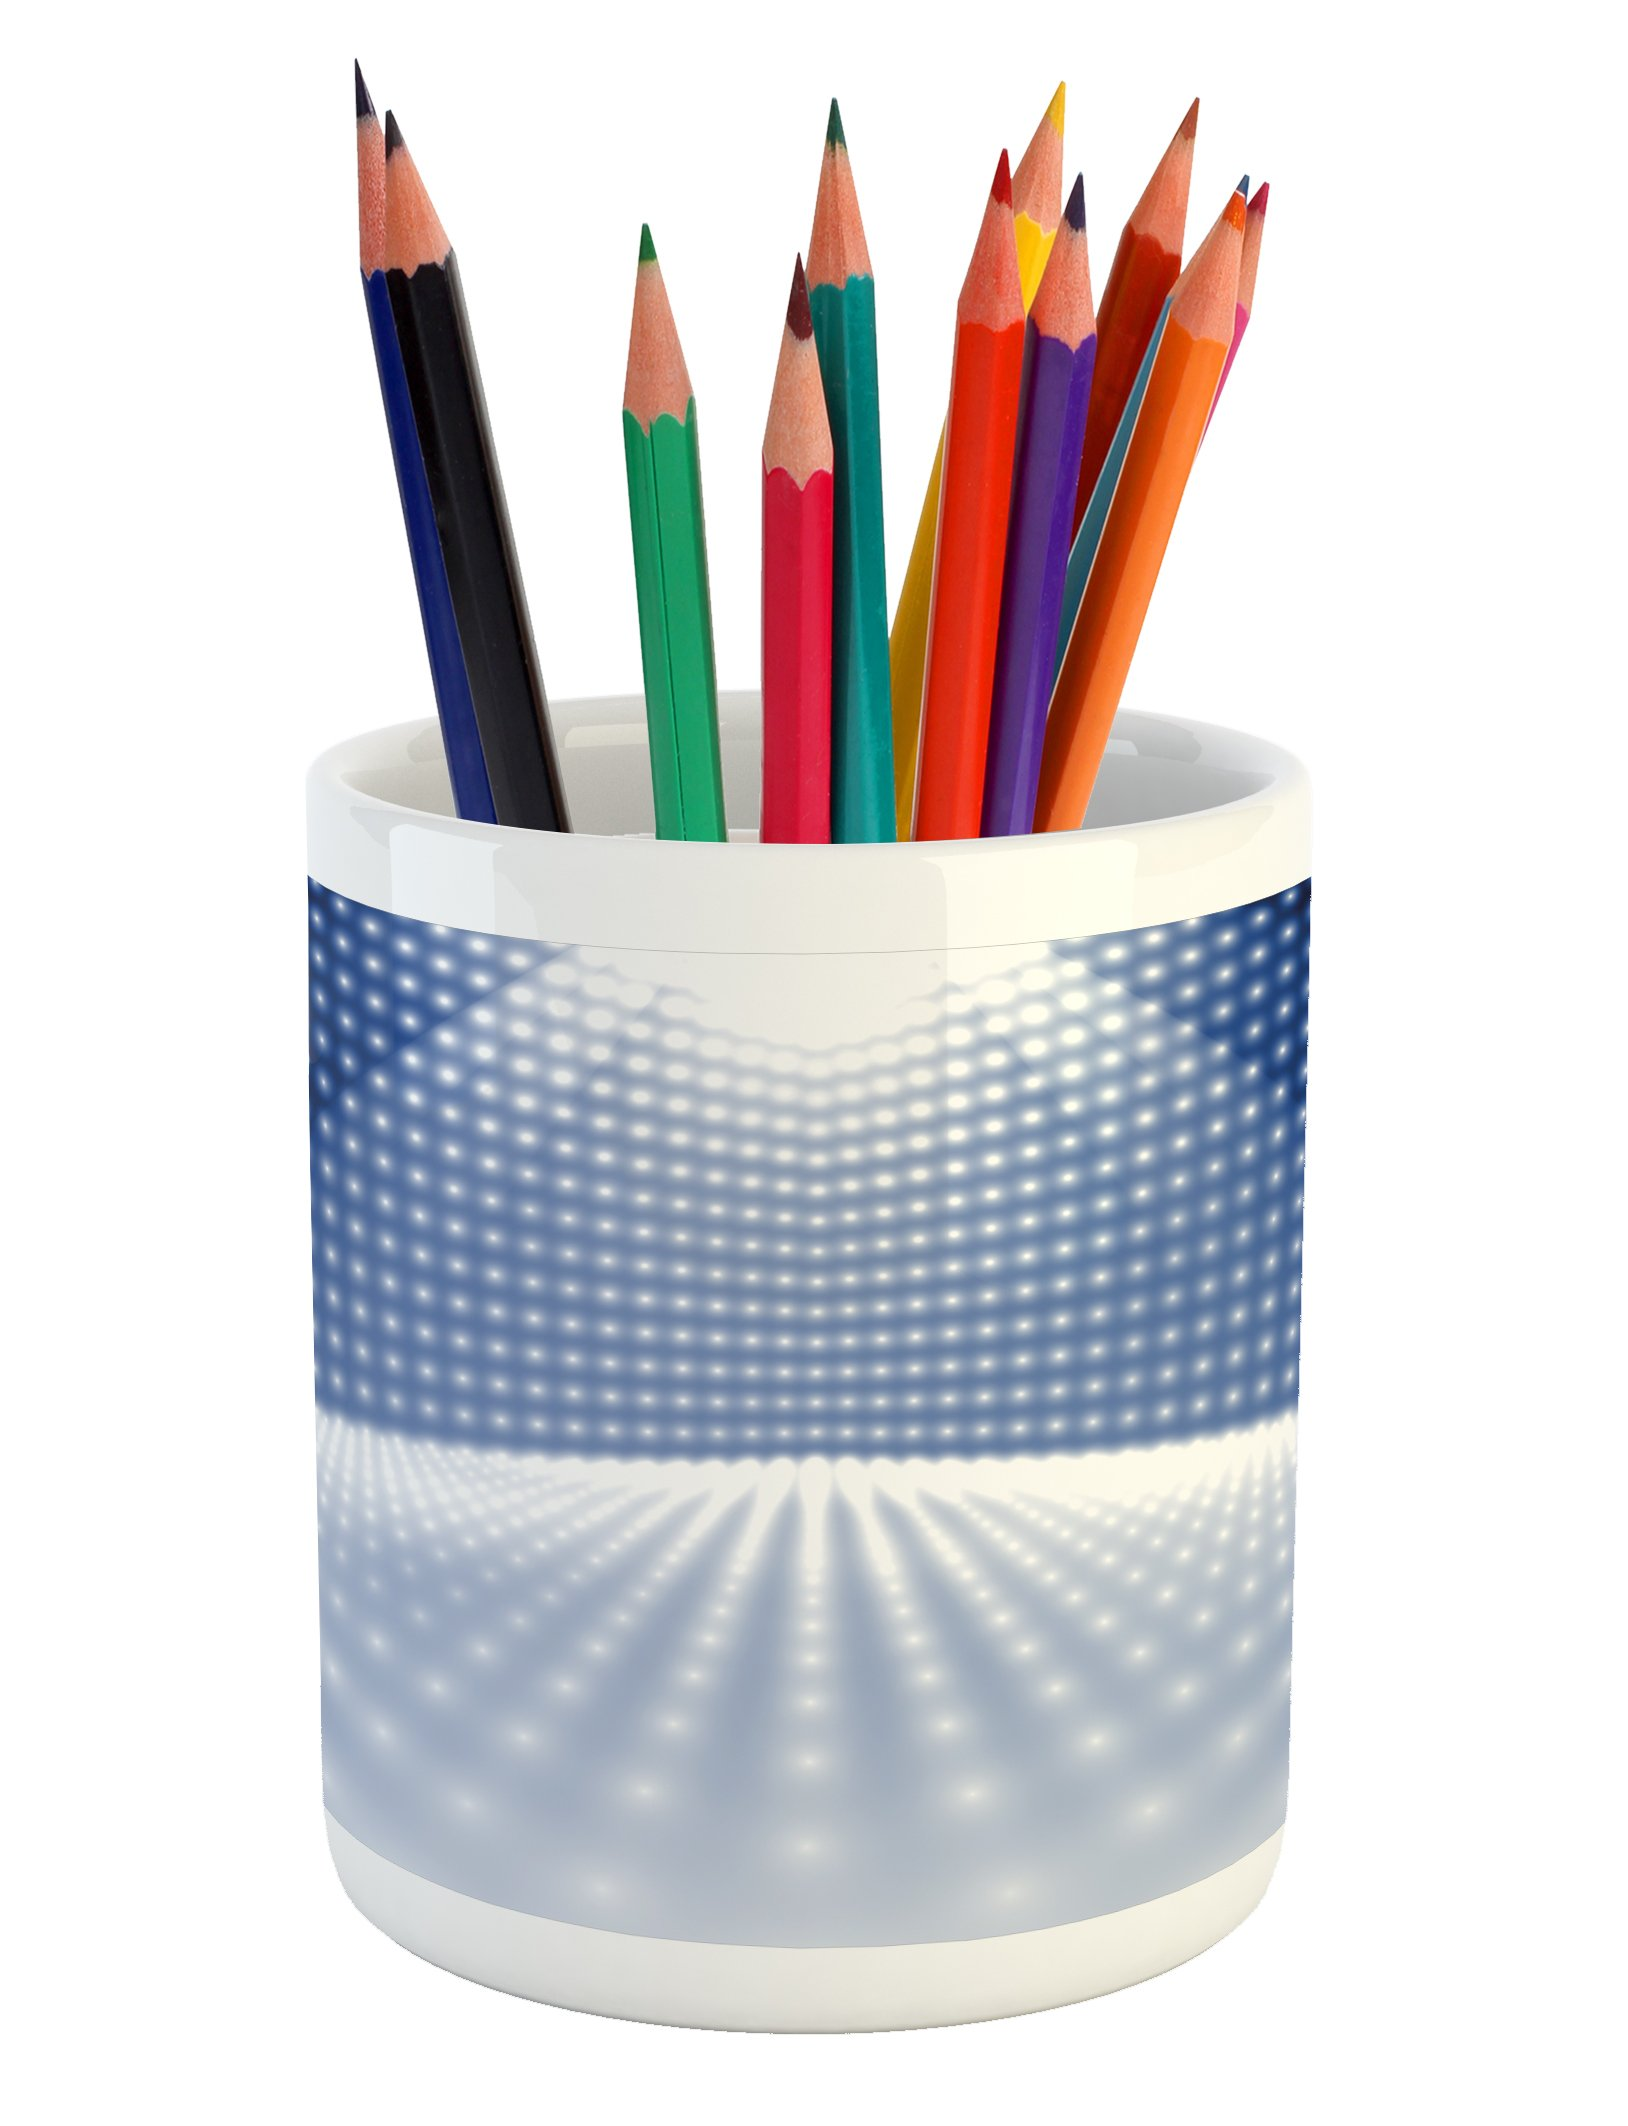 Lunarable Disco Pencil Pen Holder, Vibrant Dotted Stage Image Movie Theater Concert Performance Dance and Music, Printed Ceramic Pencil Pen Holder for Desk Office Accessory, Navy Blue White